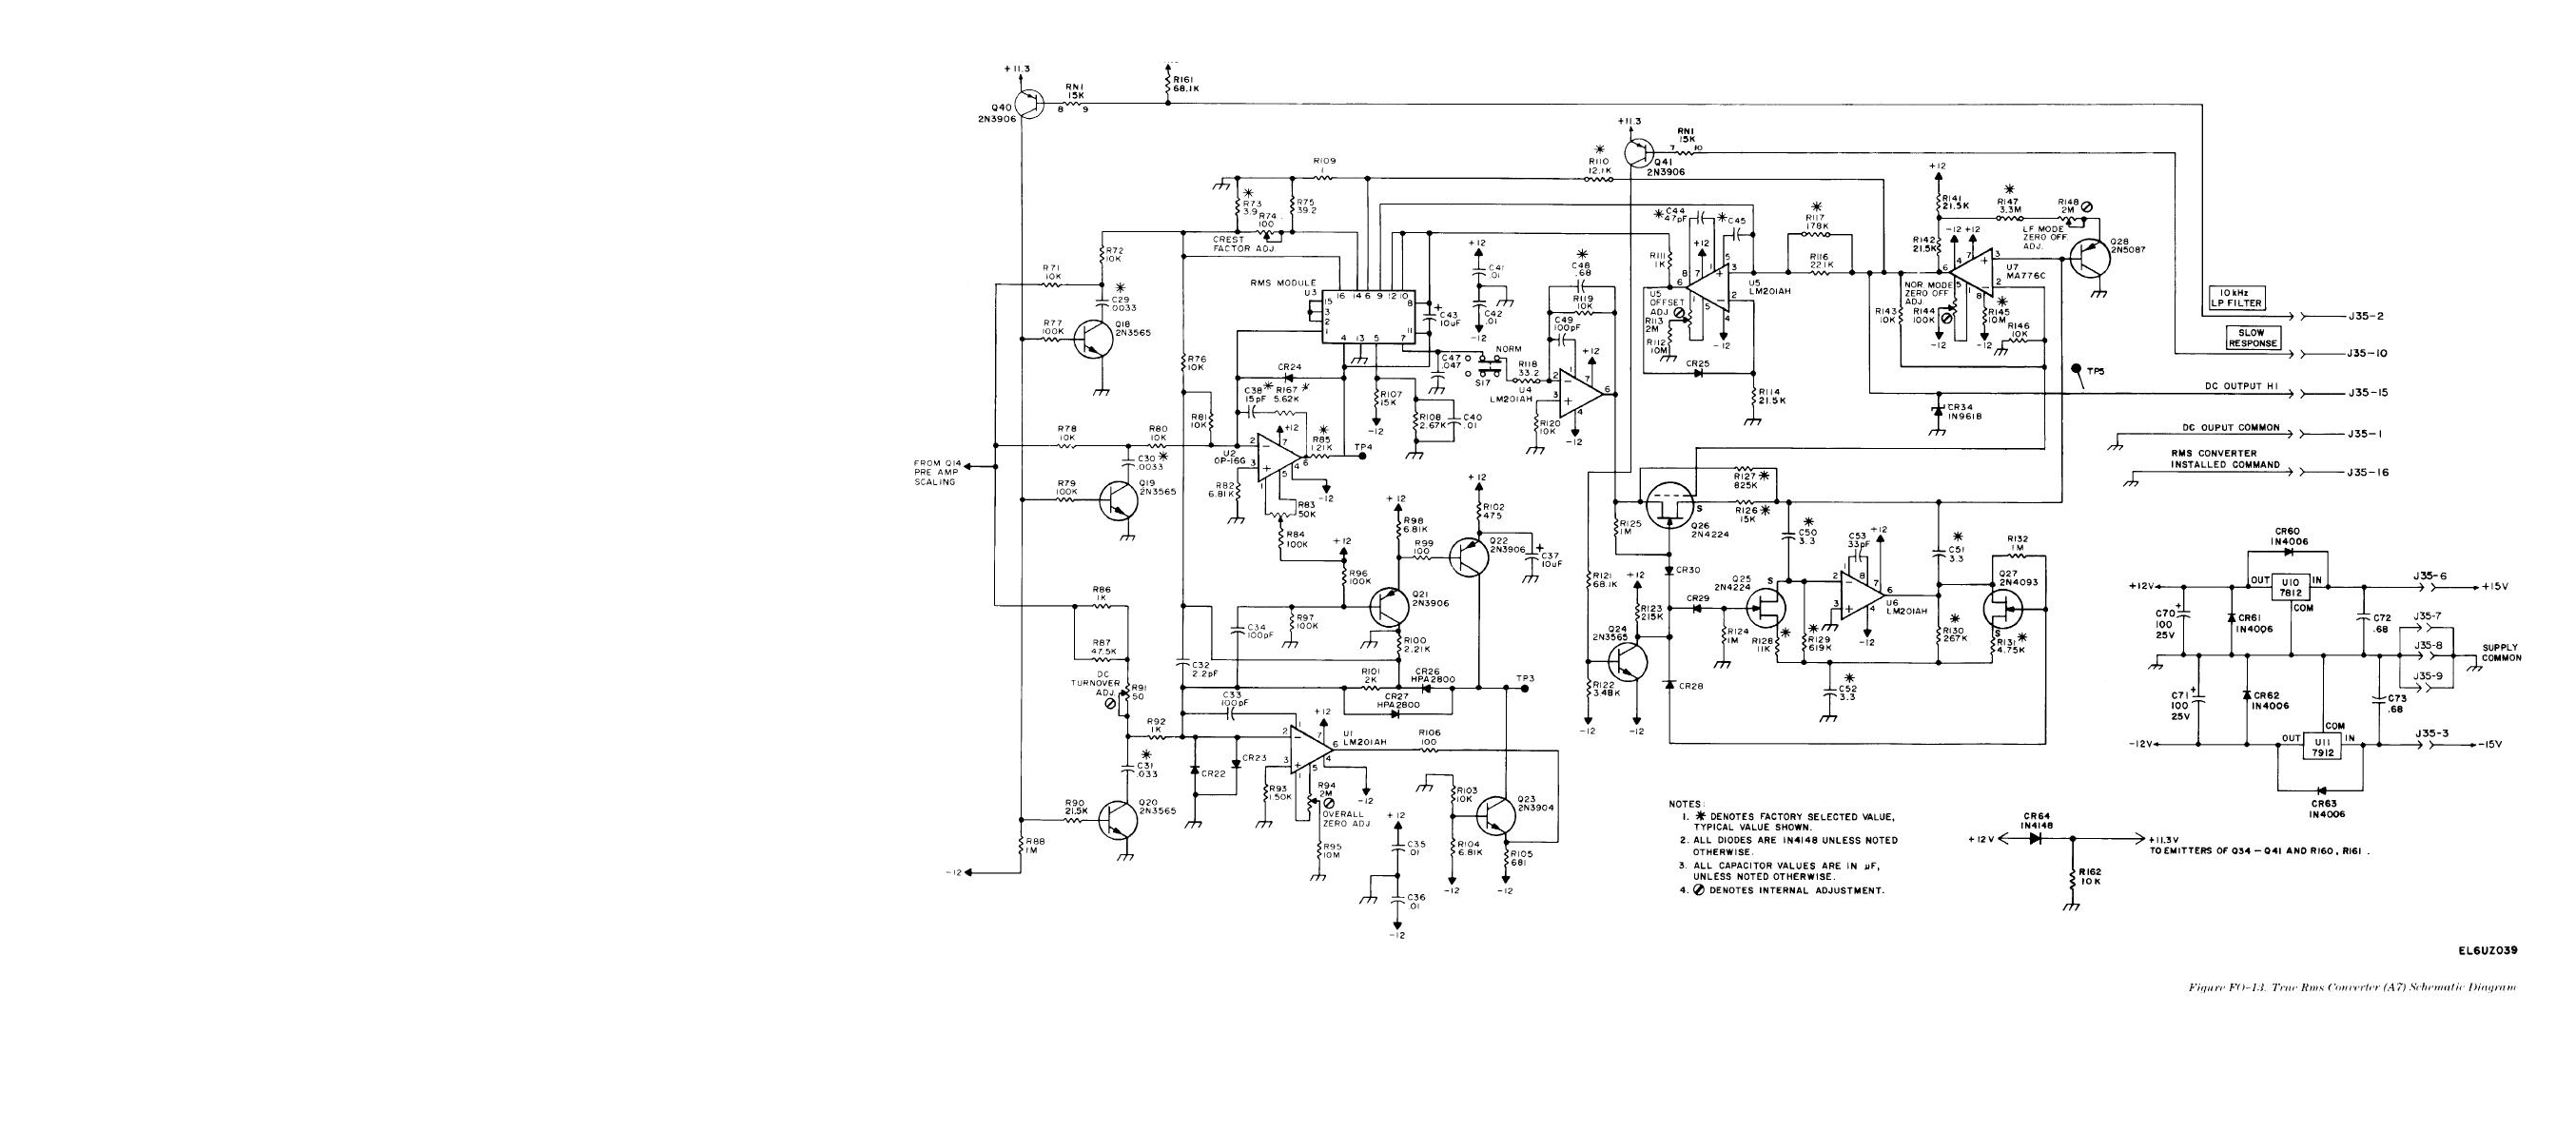 Top Circuits Page 105 555 Timer Buildcircuit True Rms Converter